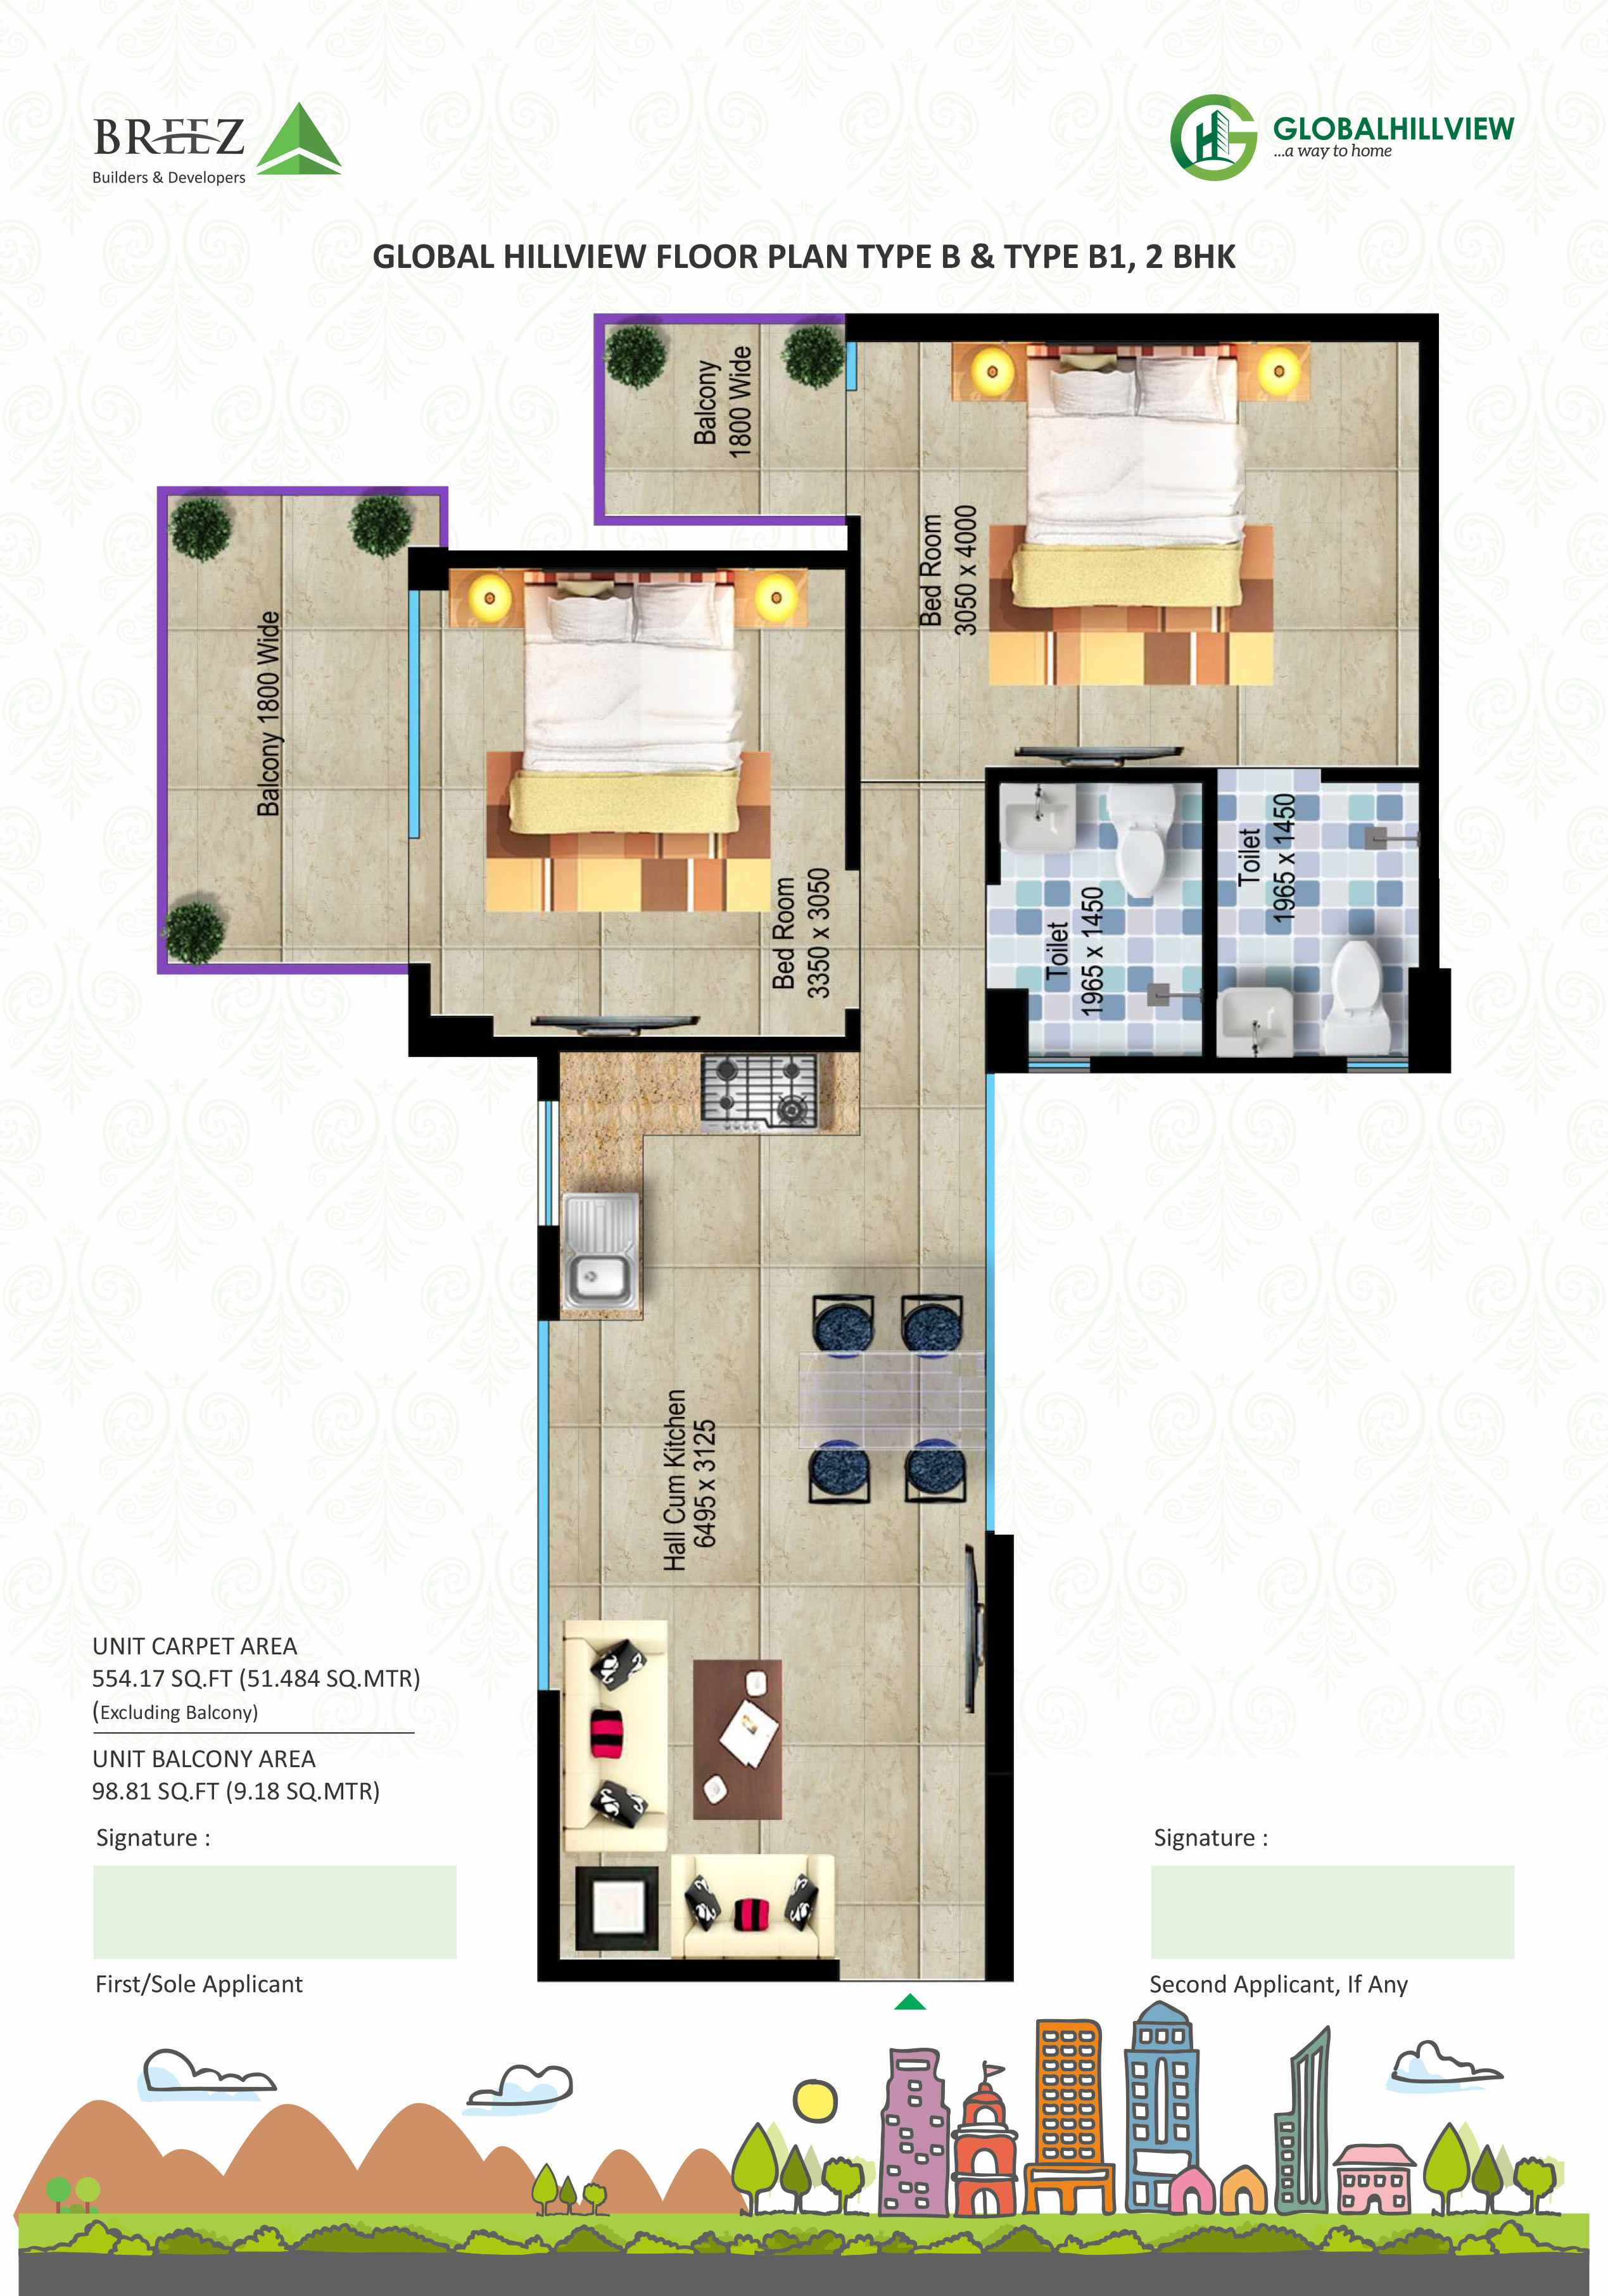 Global Hill View 2 bhk floor plan